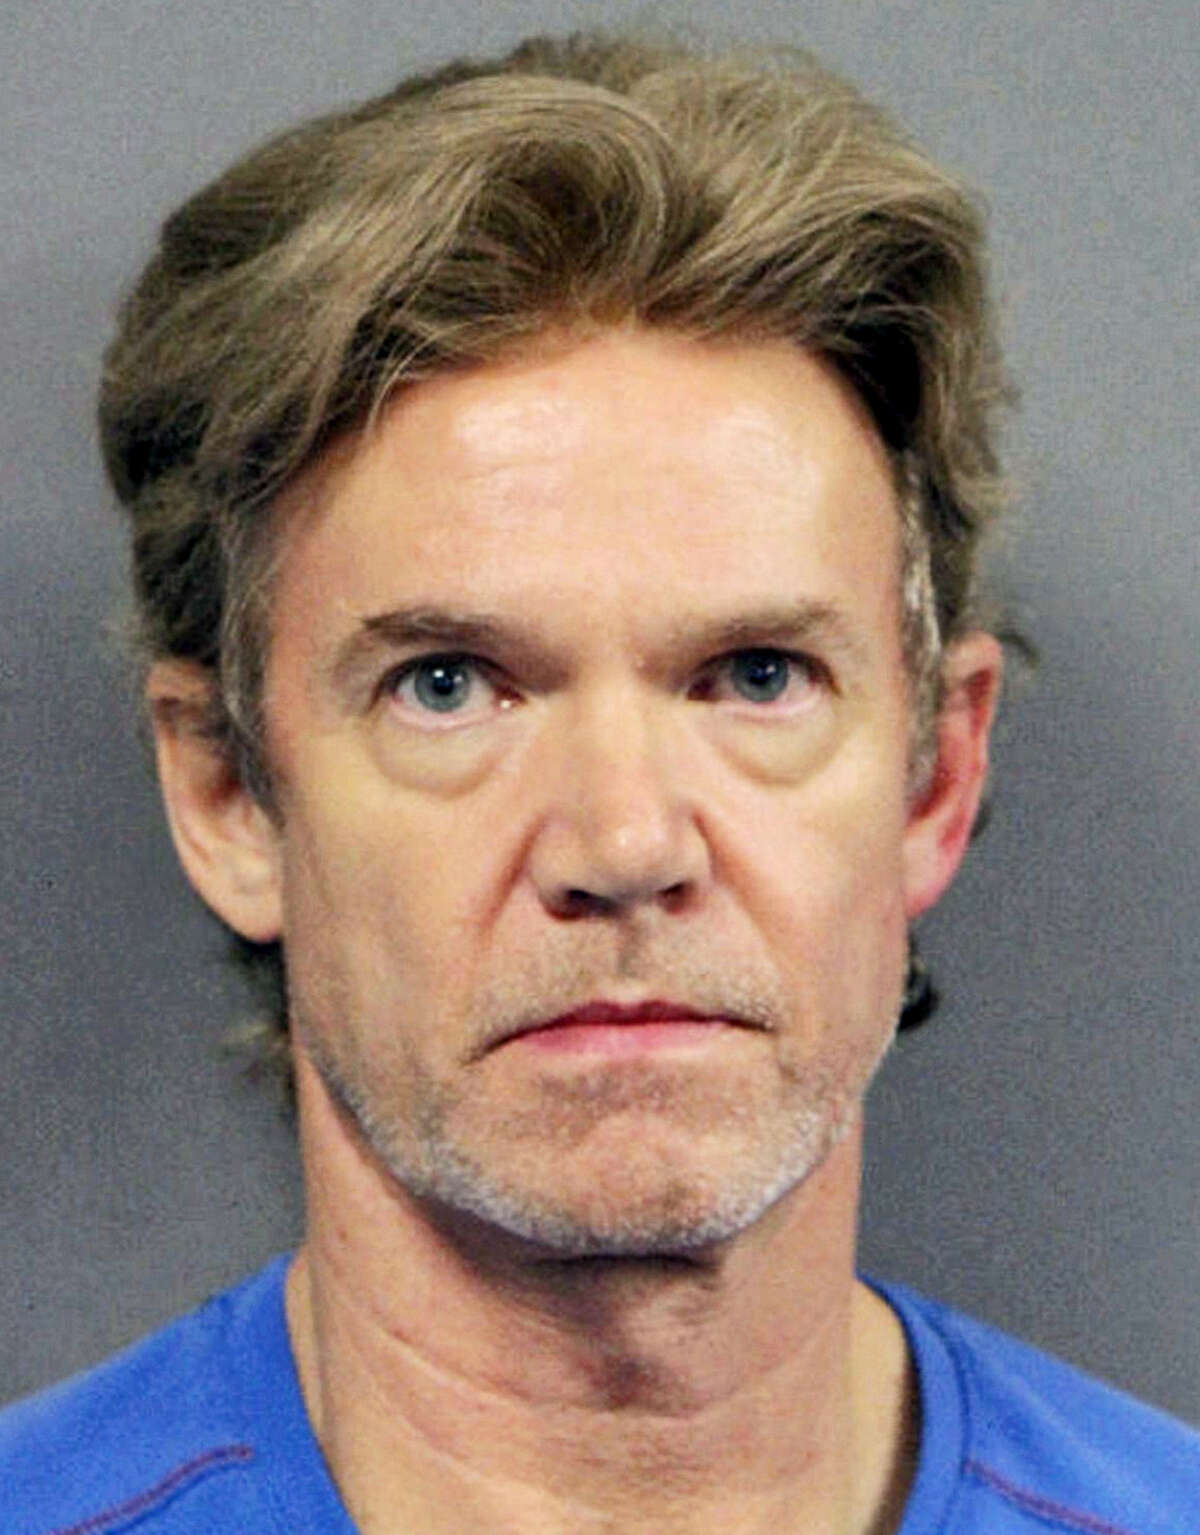 This booking photo released by the Jefferson Parish Sheriff's Office shows Ronald Gasser, accused of killing former NFL running back Joe McKnight during a road rage dispute. Gasser was indicted on a charge of second-degree murder, Jefferson Parish District Attorney Paul Connick Jr. said in a news release on Feb. 2, 2017.